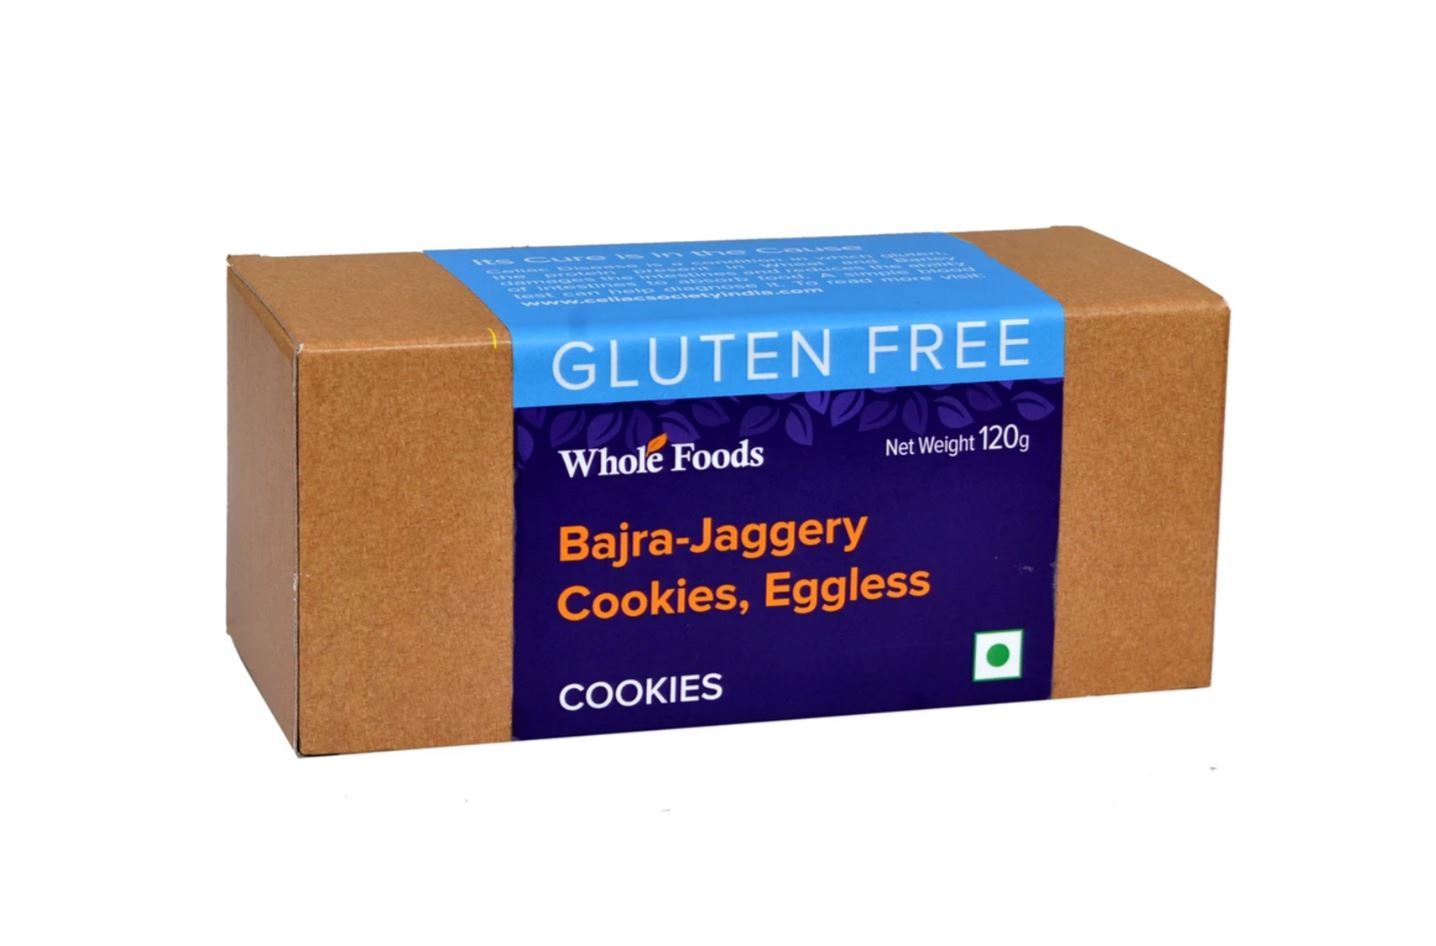 first impressions of whole foods gluten free cookies